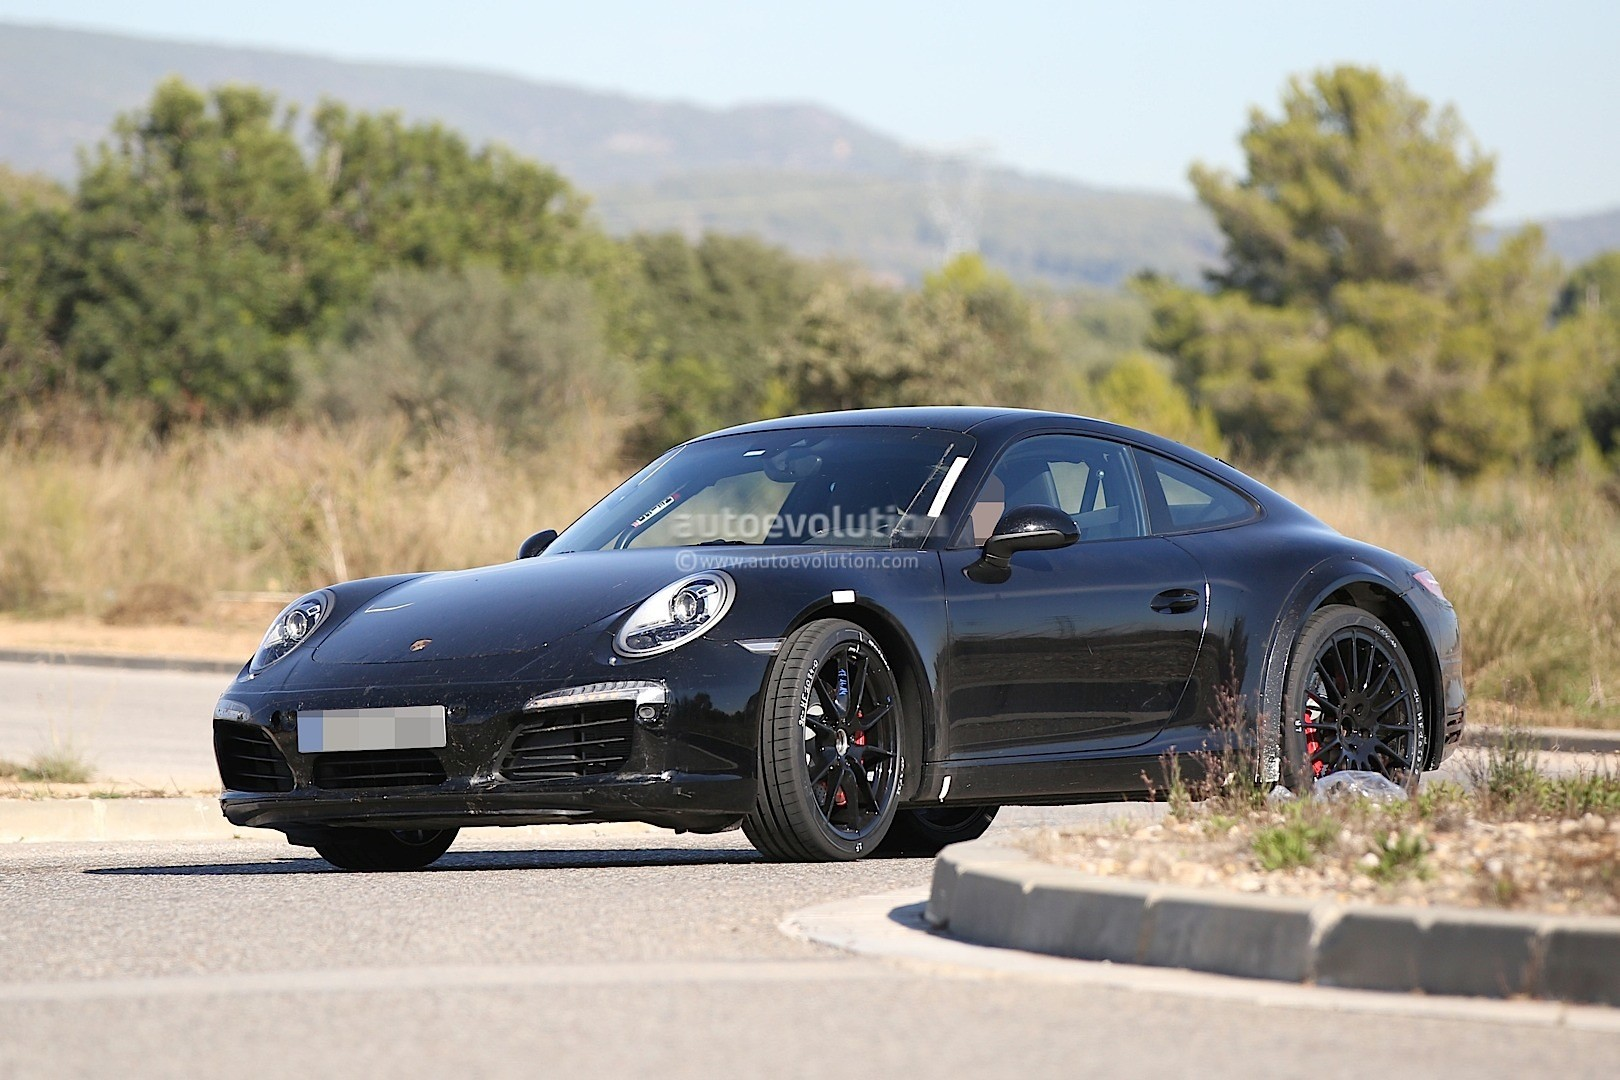 2019 Porsche 911 Carrera GTS photo - 1